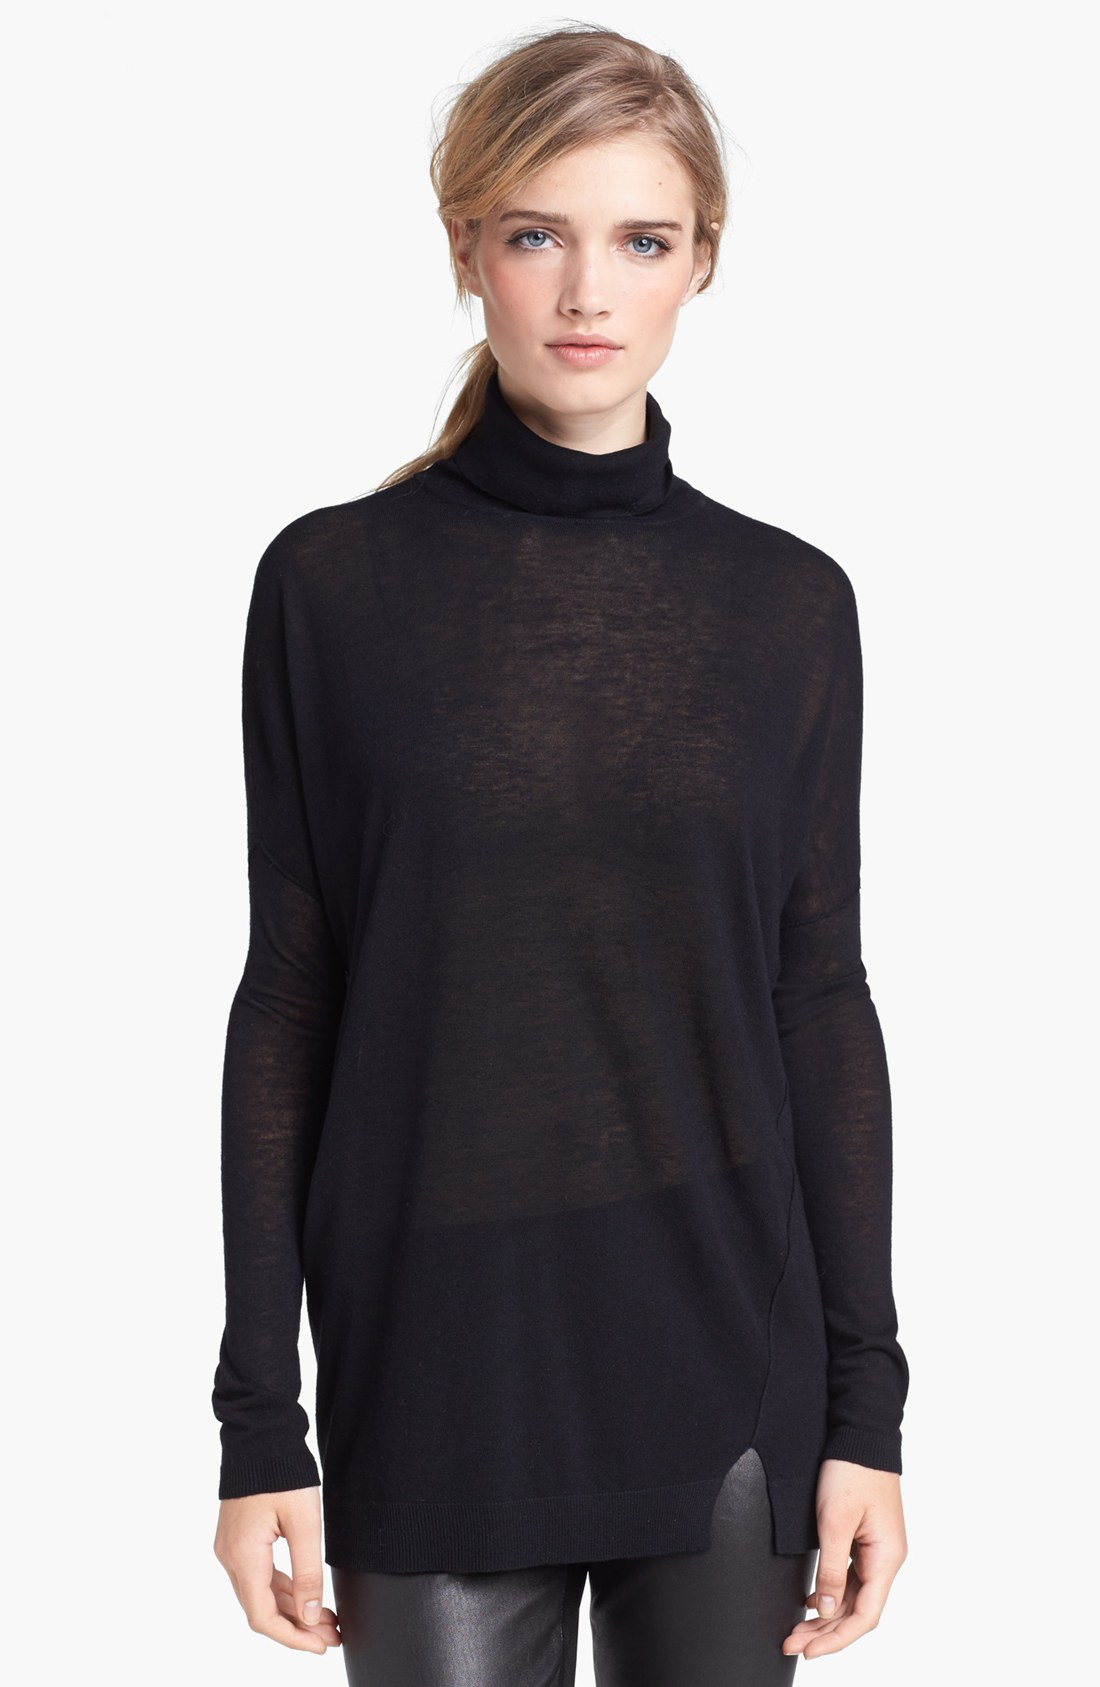 Shop black long sleeve pullover sweater at Neiman Marcus, where you will find free shipping on the latest in fashion from top designers.